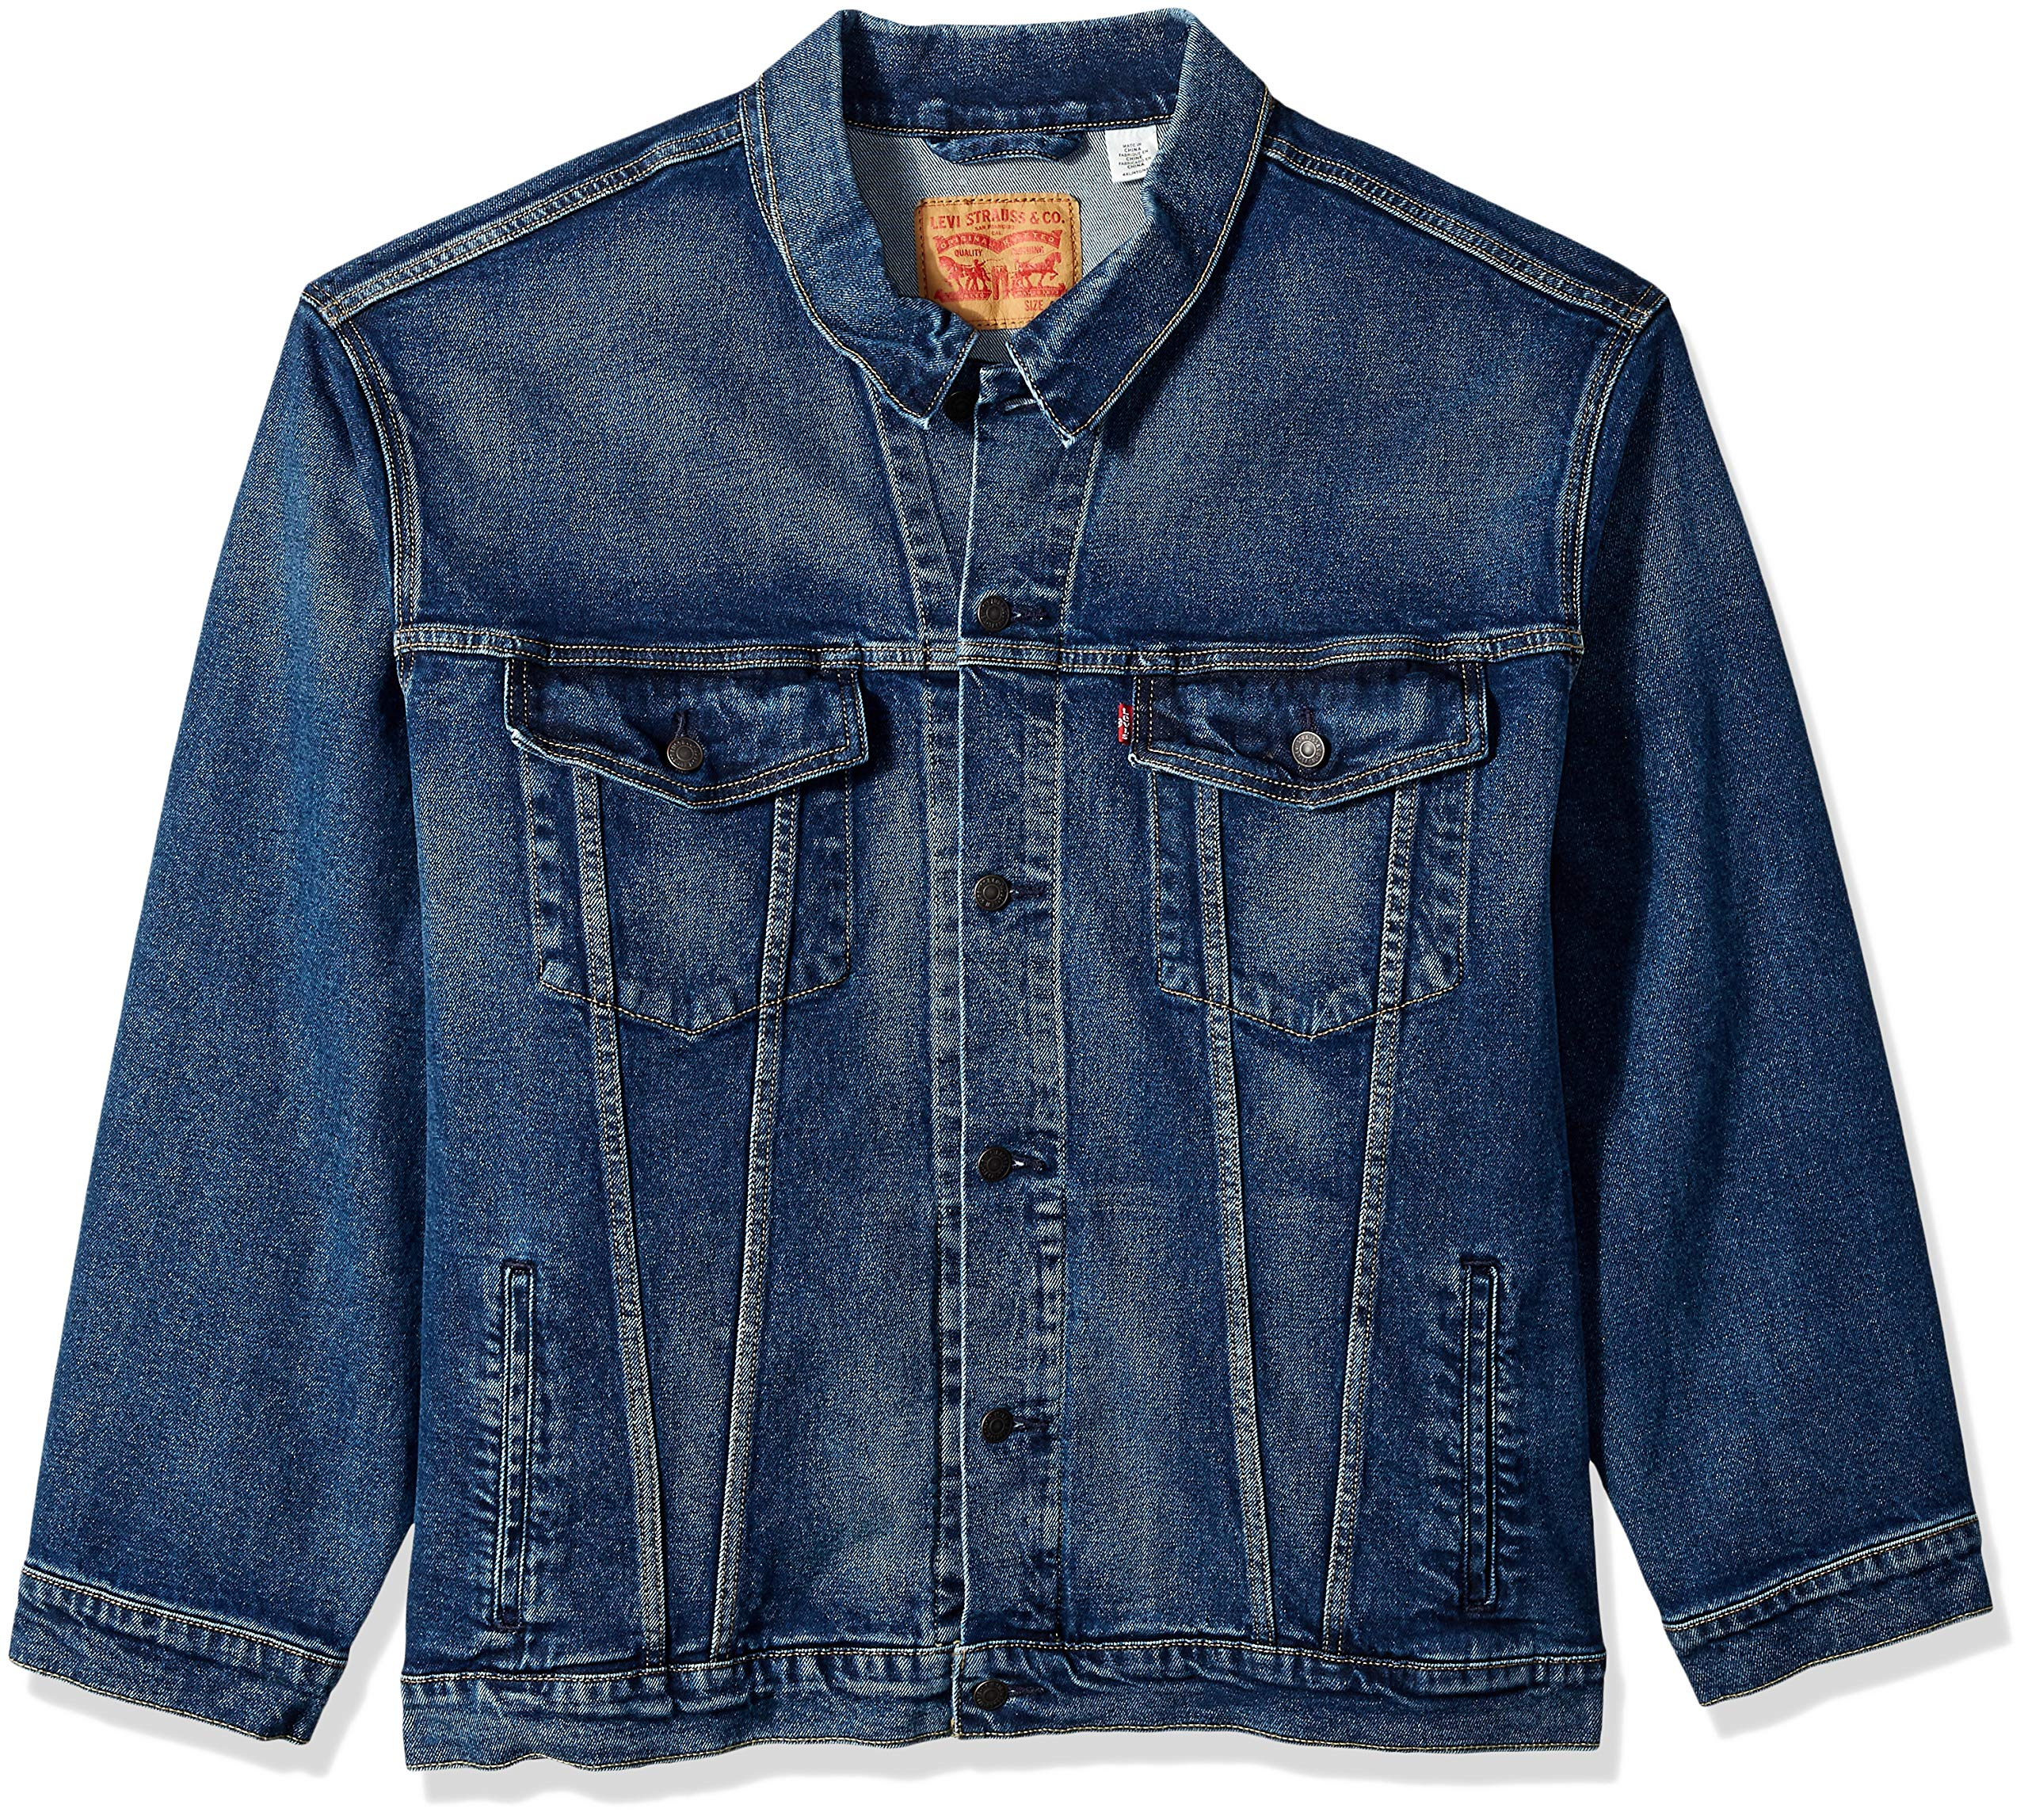 Levi's Men's Big & Tall Trucker Jacket 3